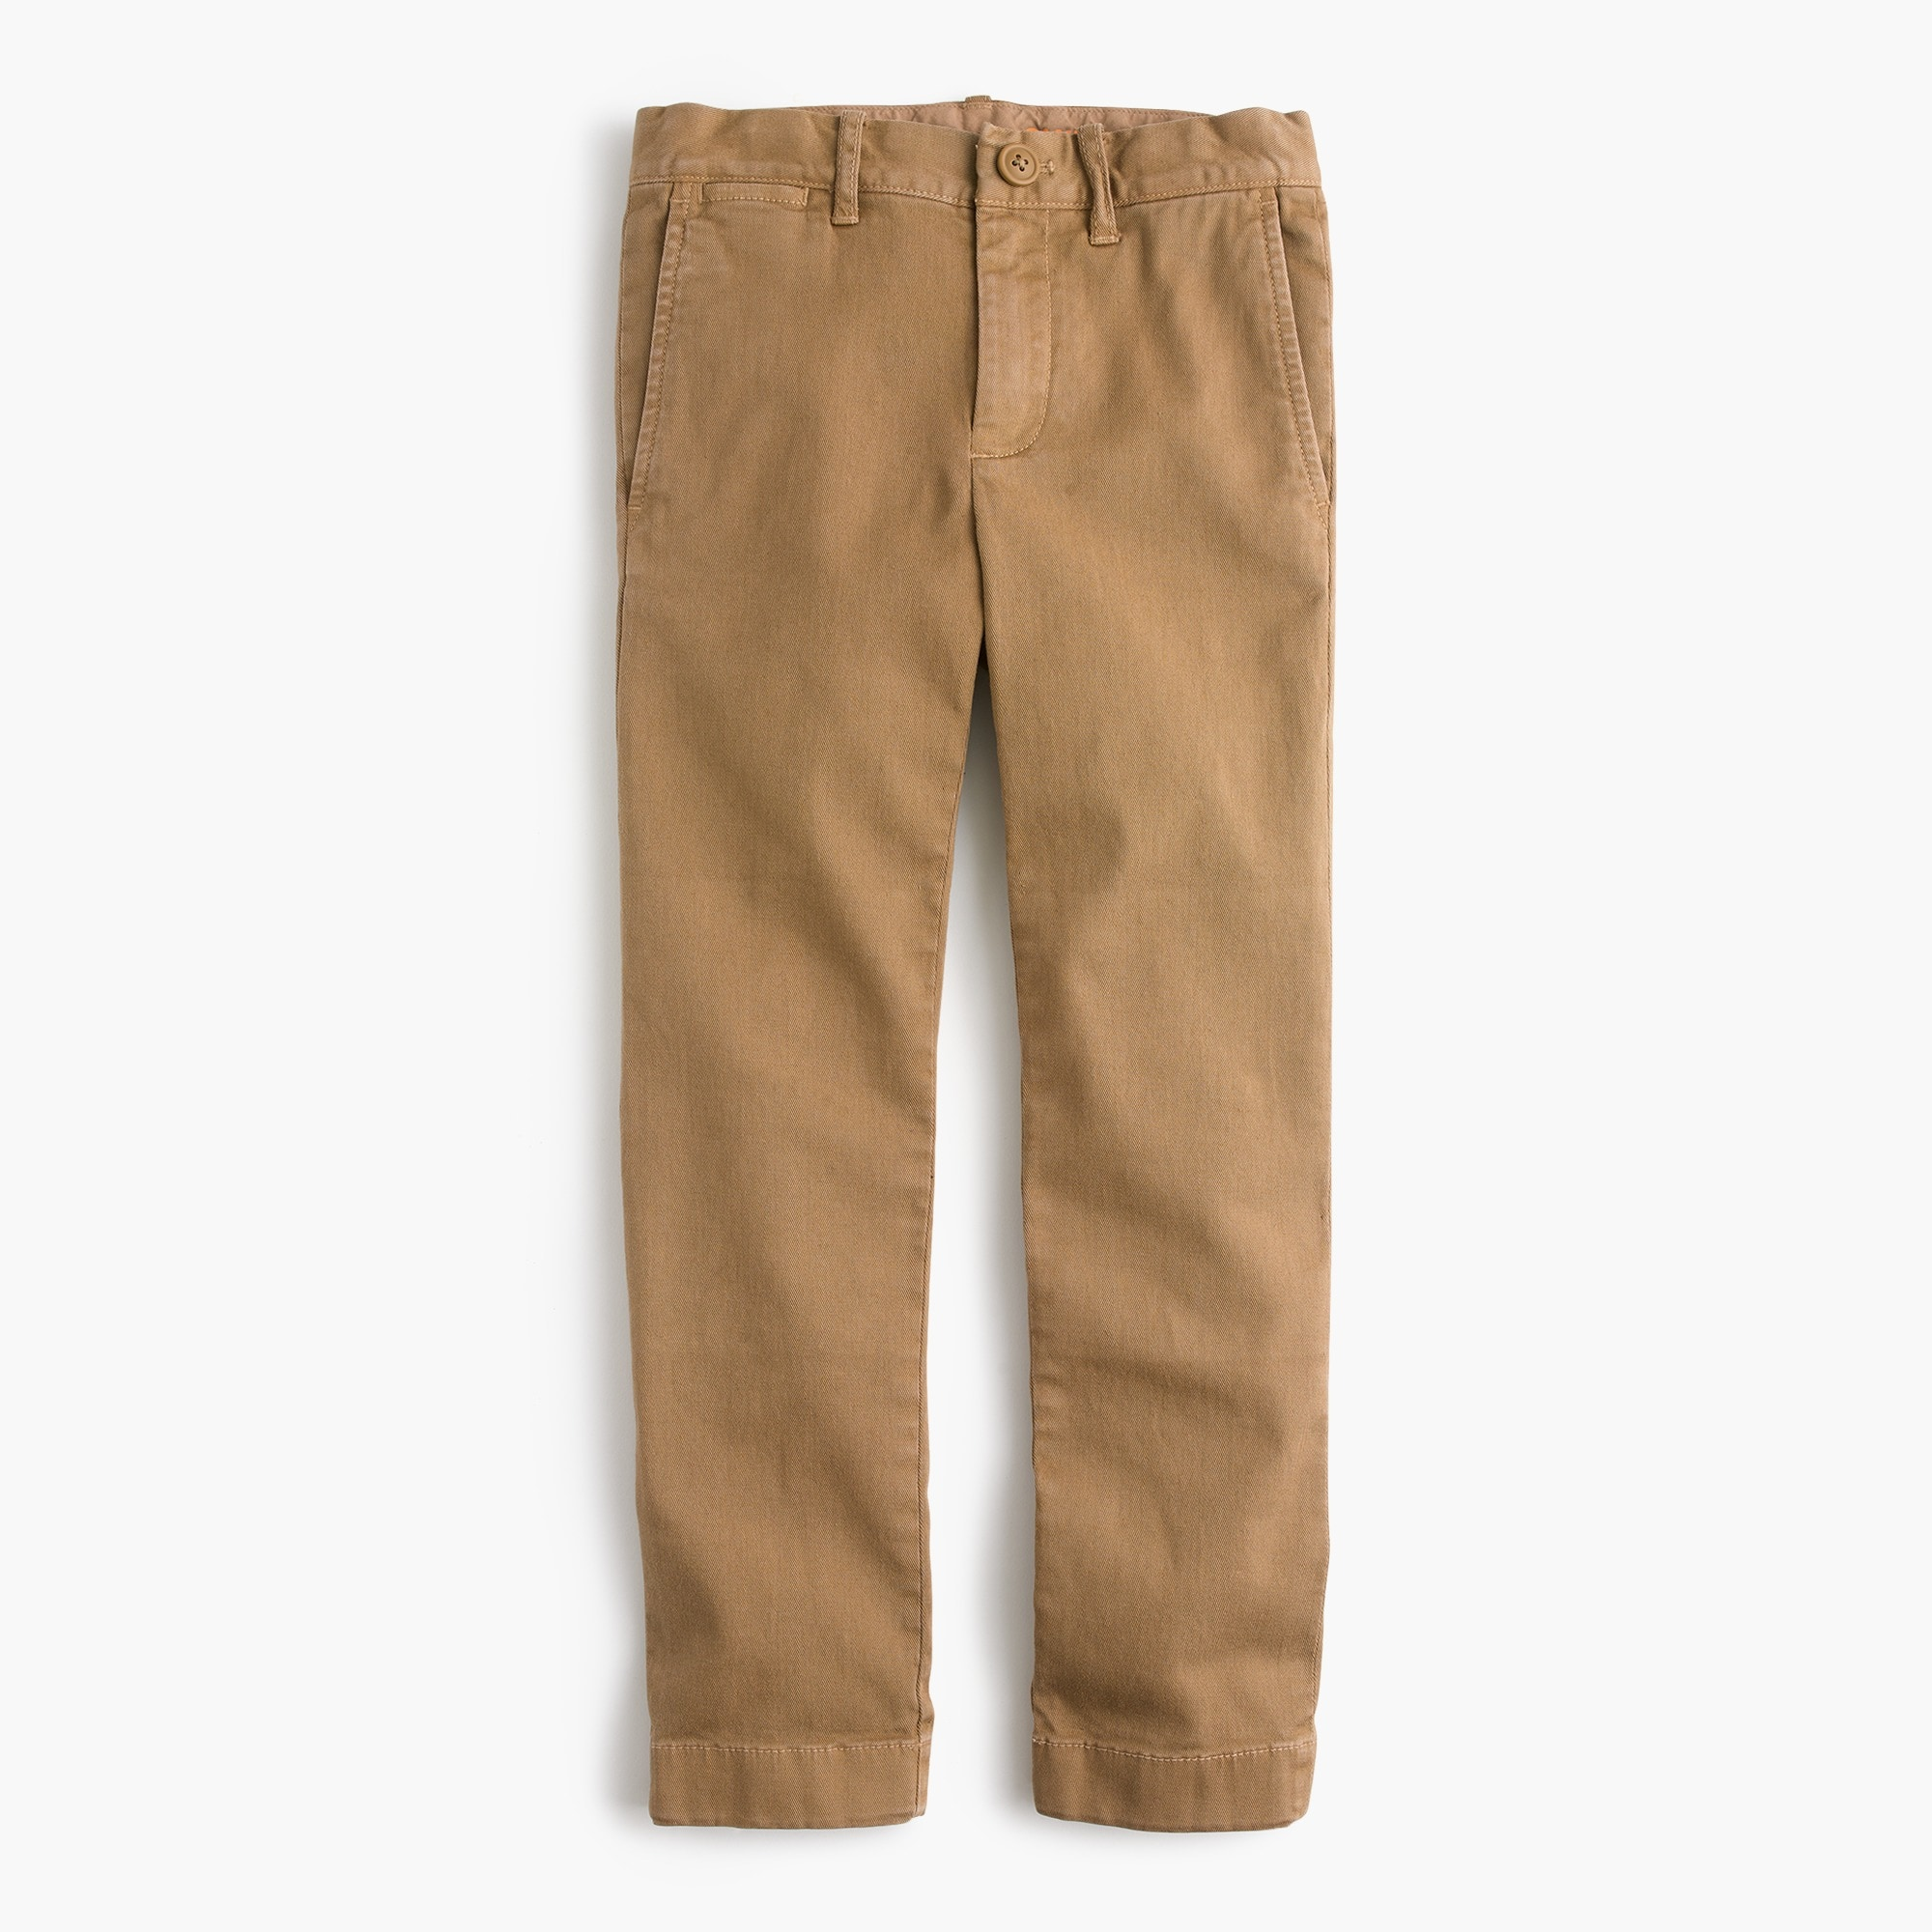 Image 1 for Boys' chino pant in stretch skinny fit